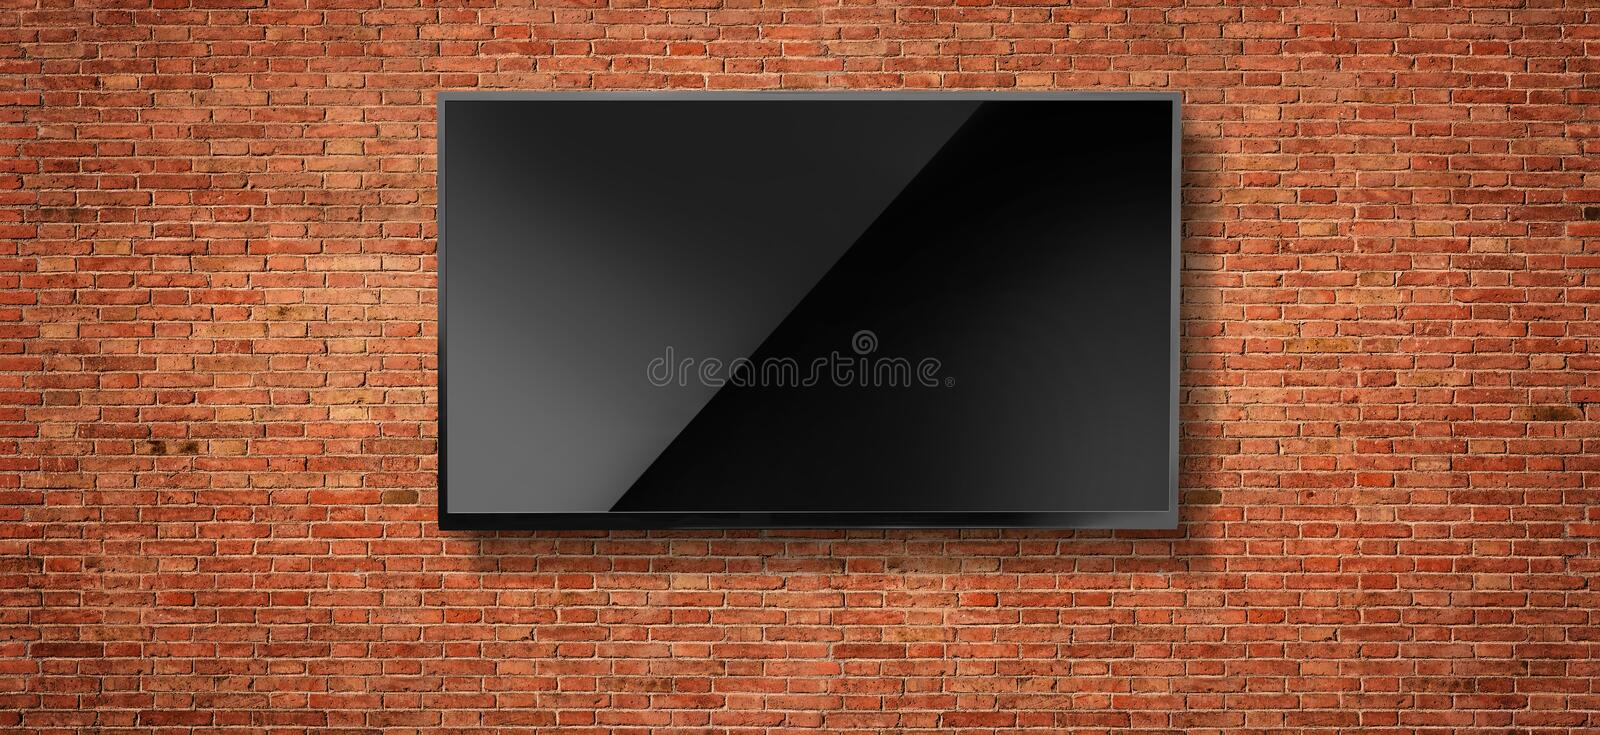 Black LED tv television. Screen blank on red wall background royalty free stock photos